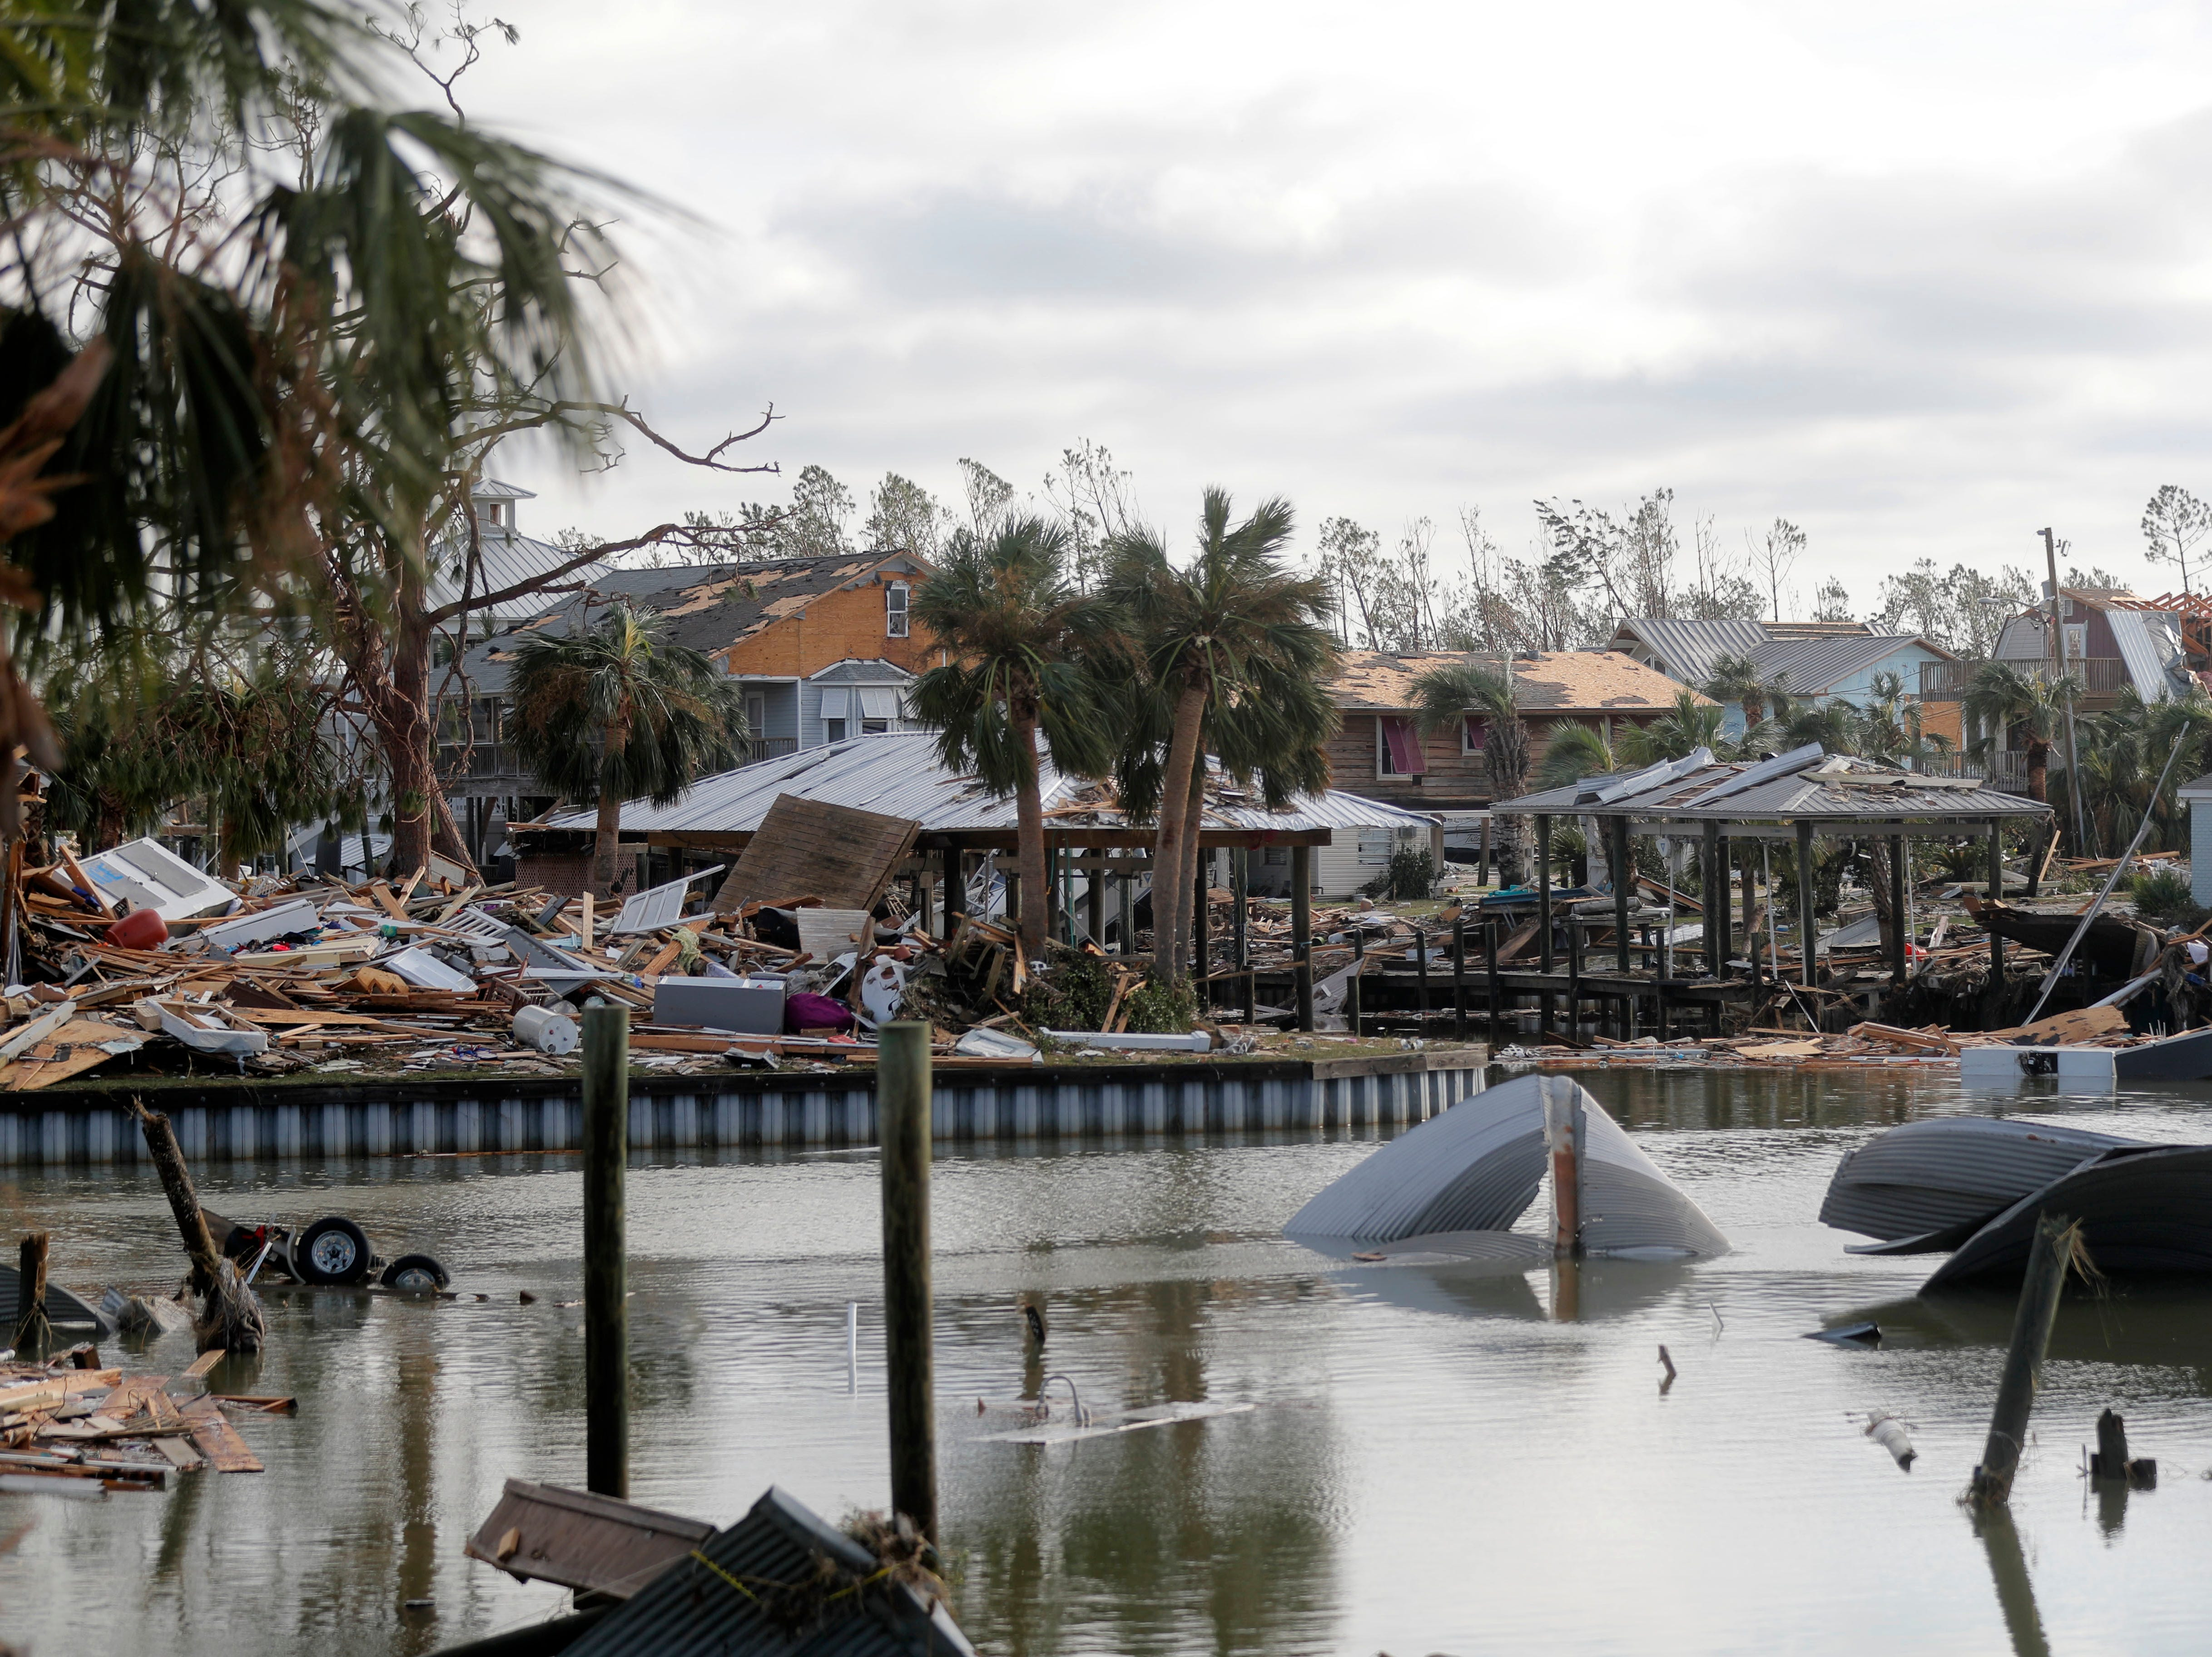 Debris scatters an area in the aftermath of Hurricane Michael in Mexico Beach, Fla., Thursday, Oct. 11, 2018. (AP Photo/Gerald Herbert)